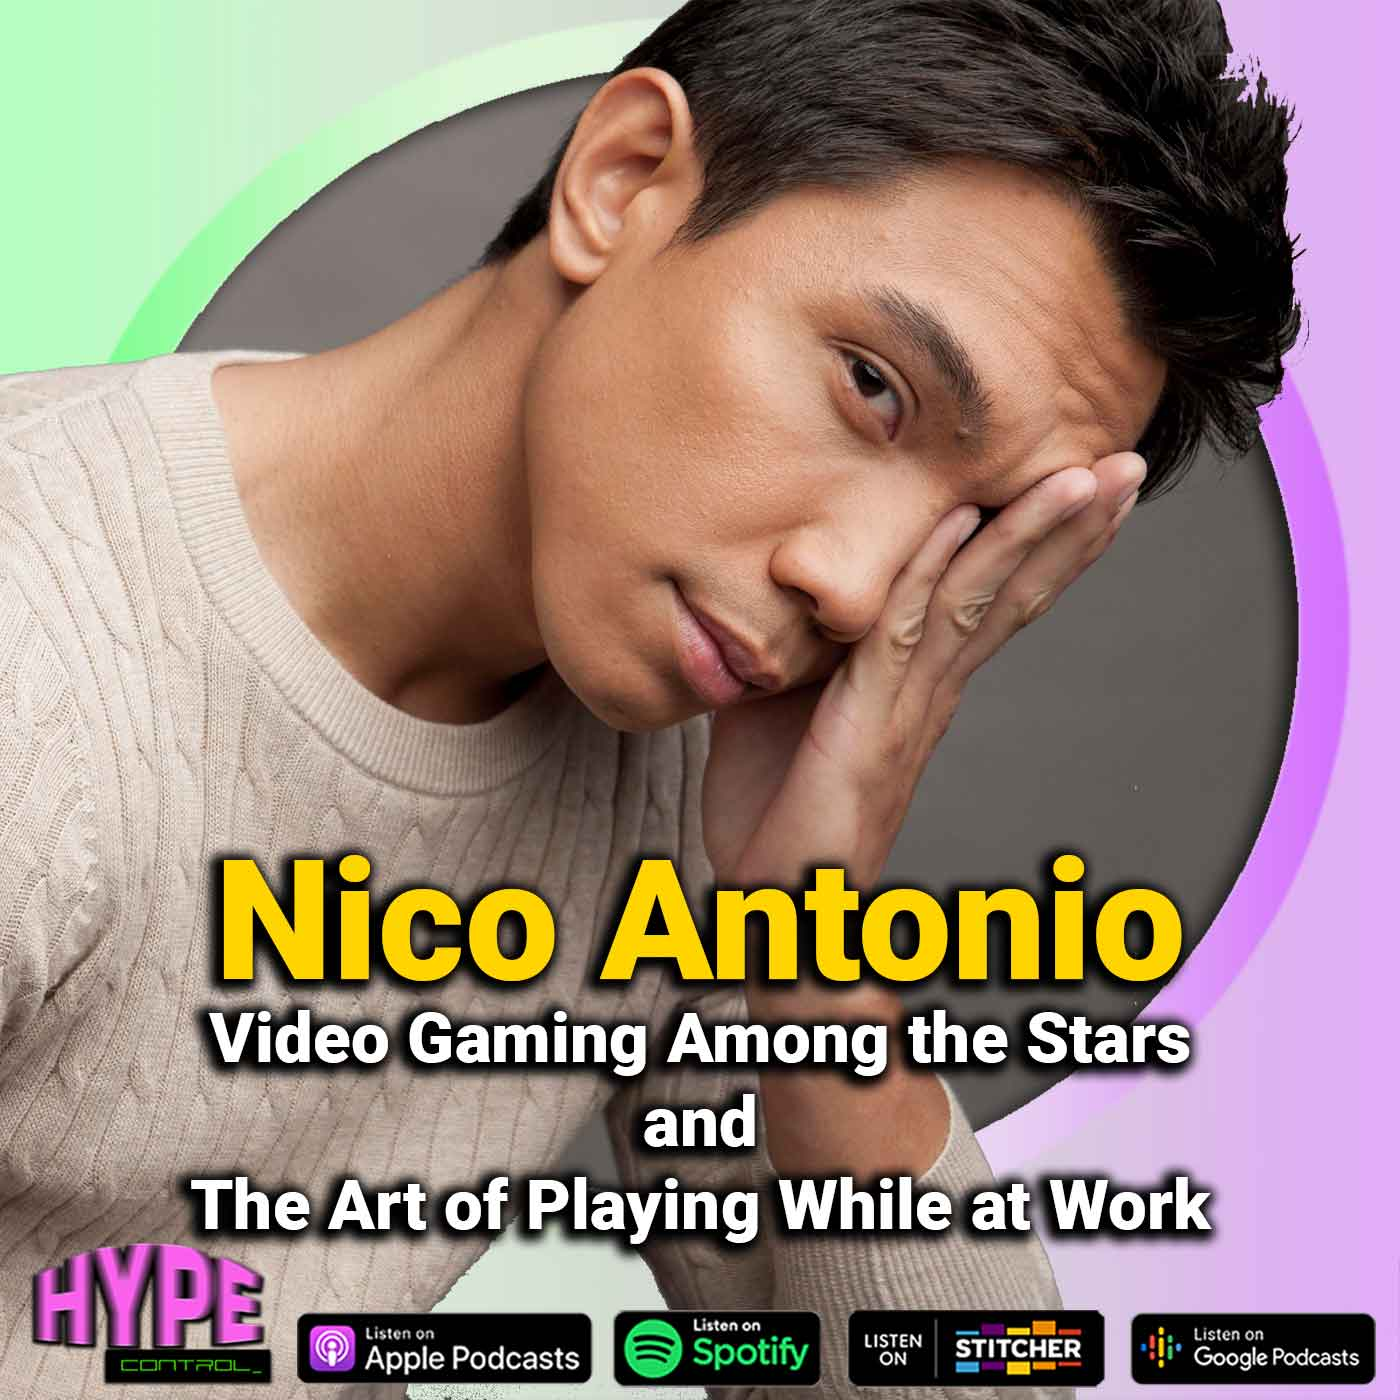 Ep. 28 - Interview with Nico Antonio and the Art of Playing at Work